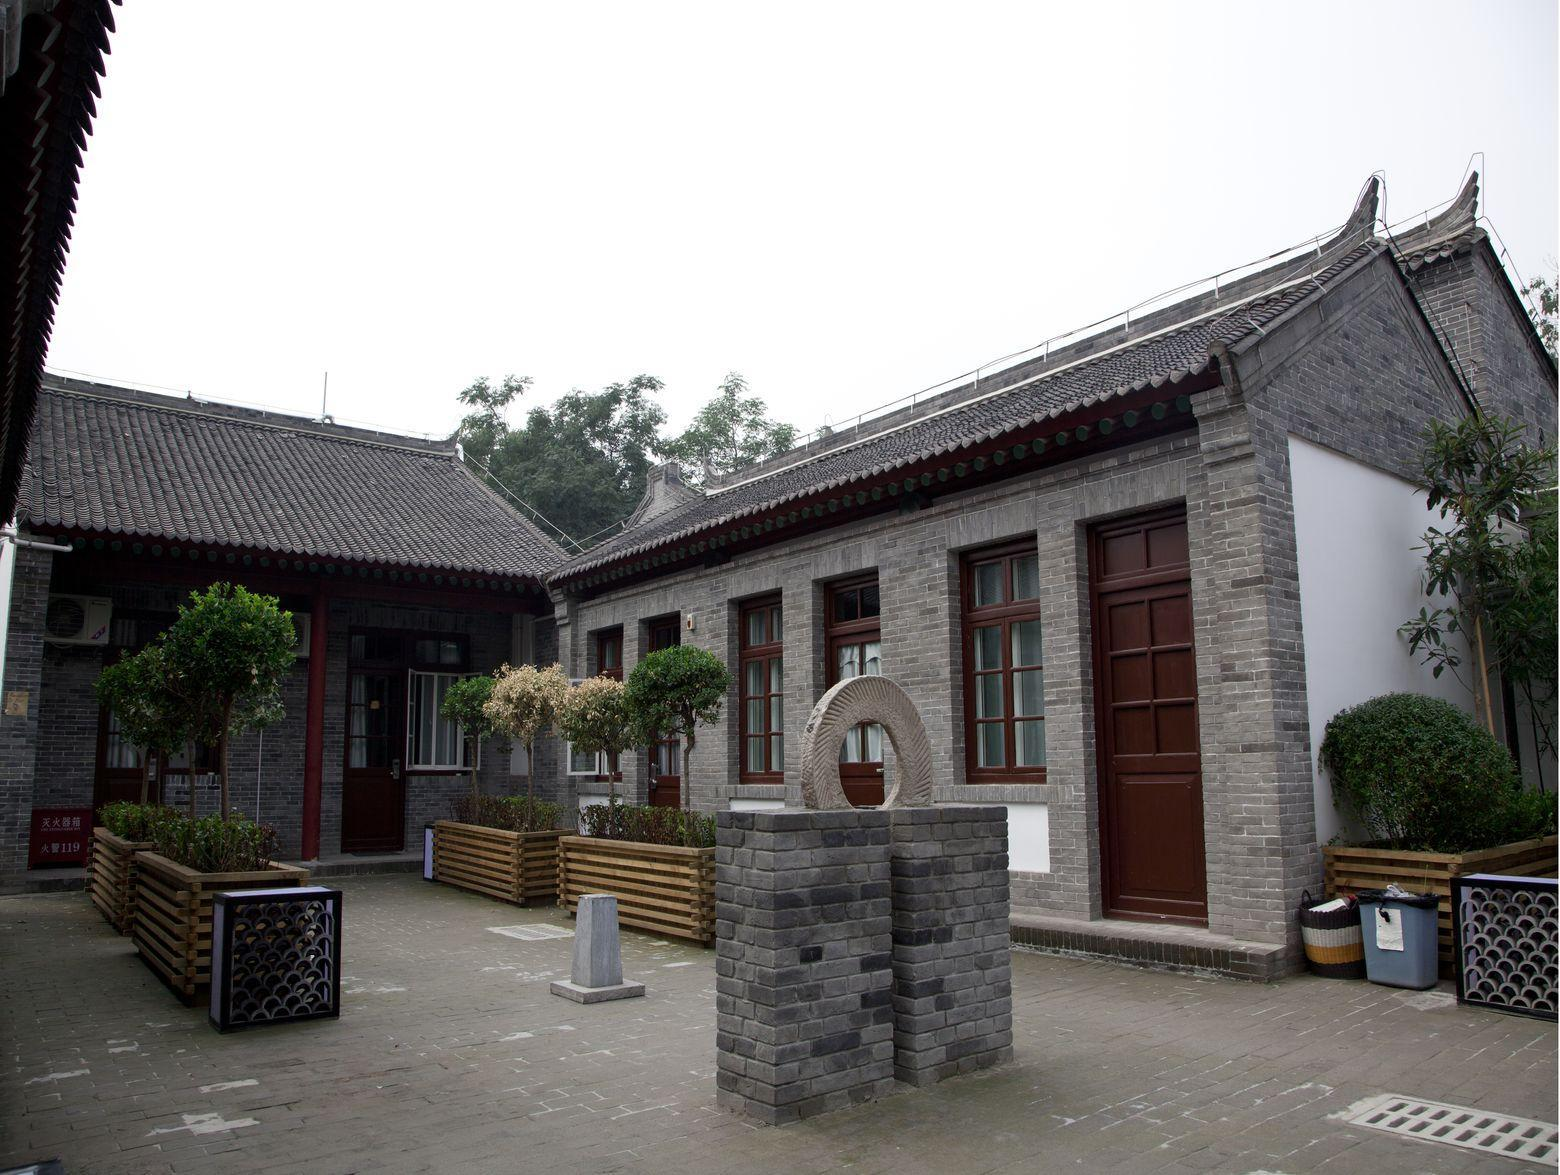 Xian 7 Sages Youth Hostel International